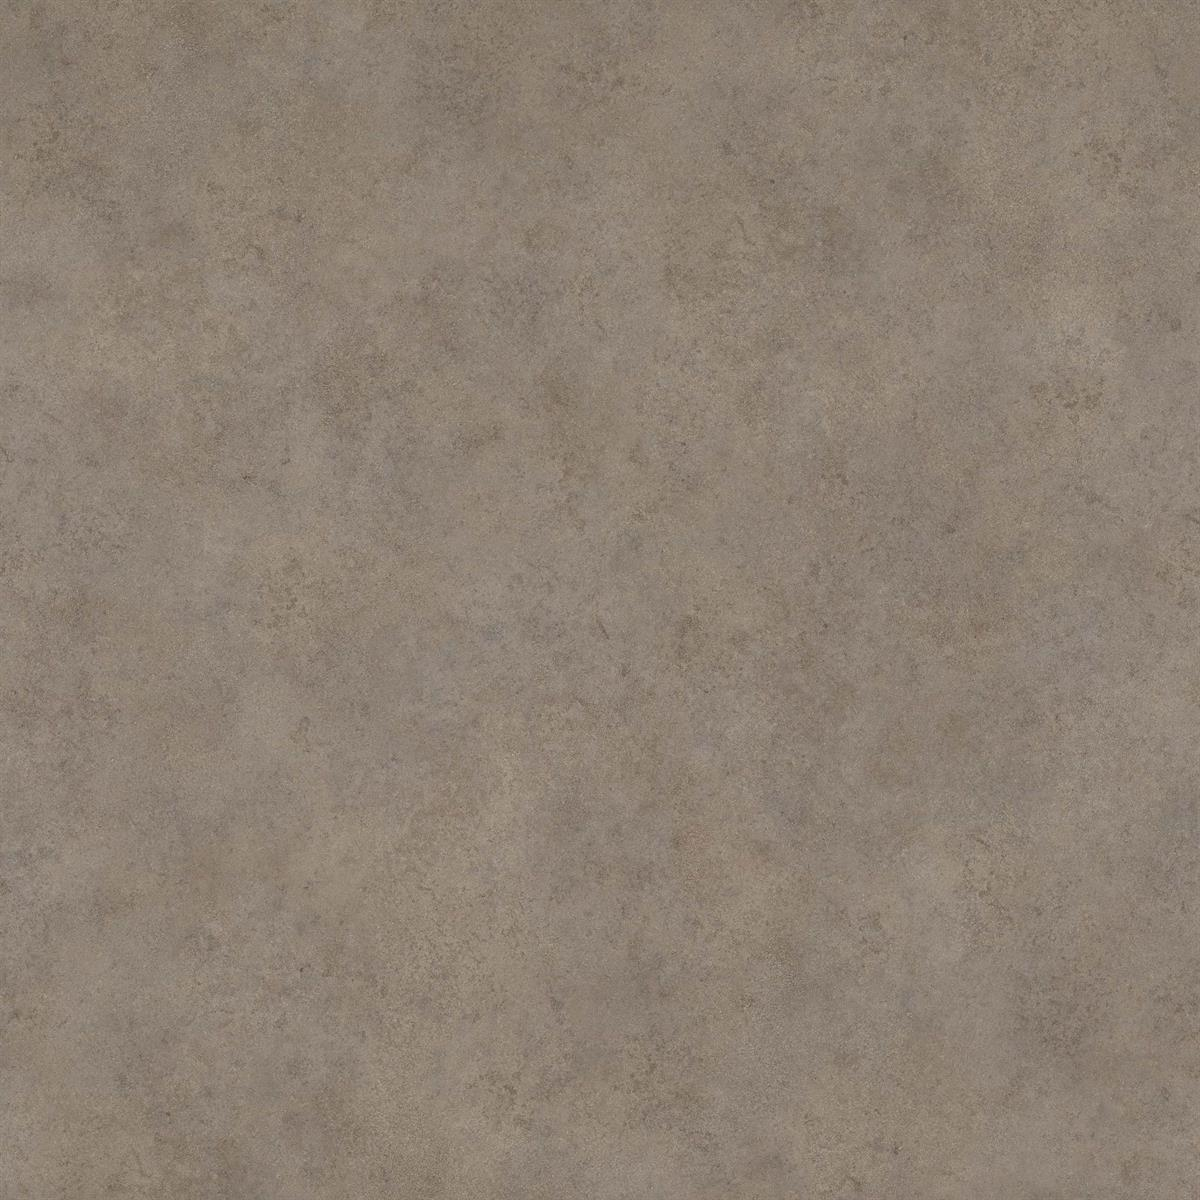 Egger Contemporary Isodora Beige kitchen worktop sample.